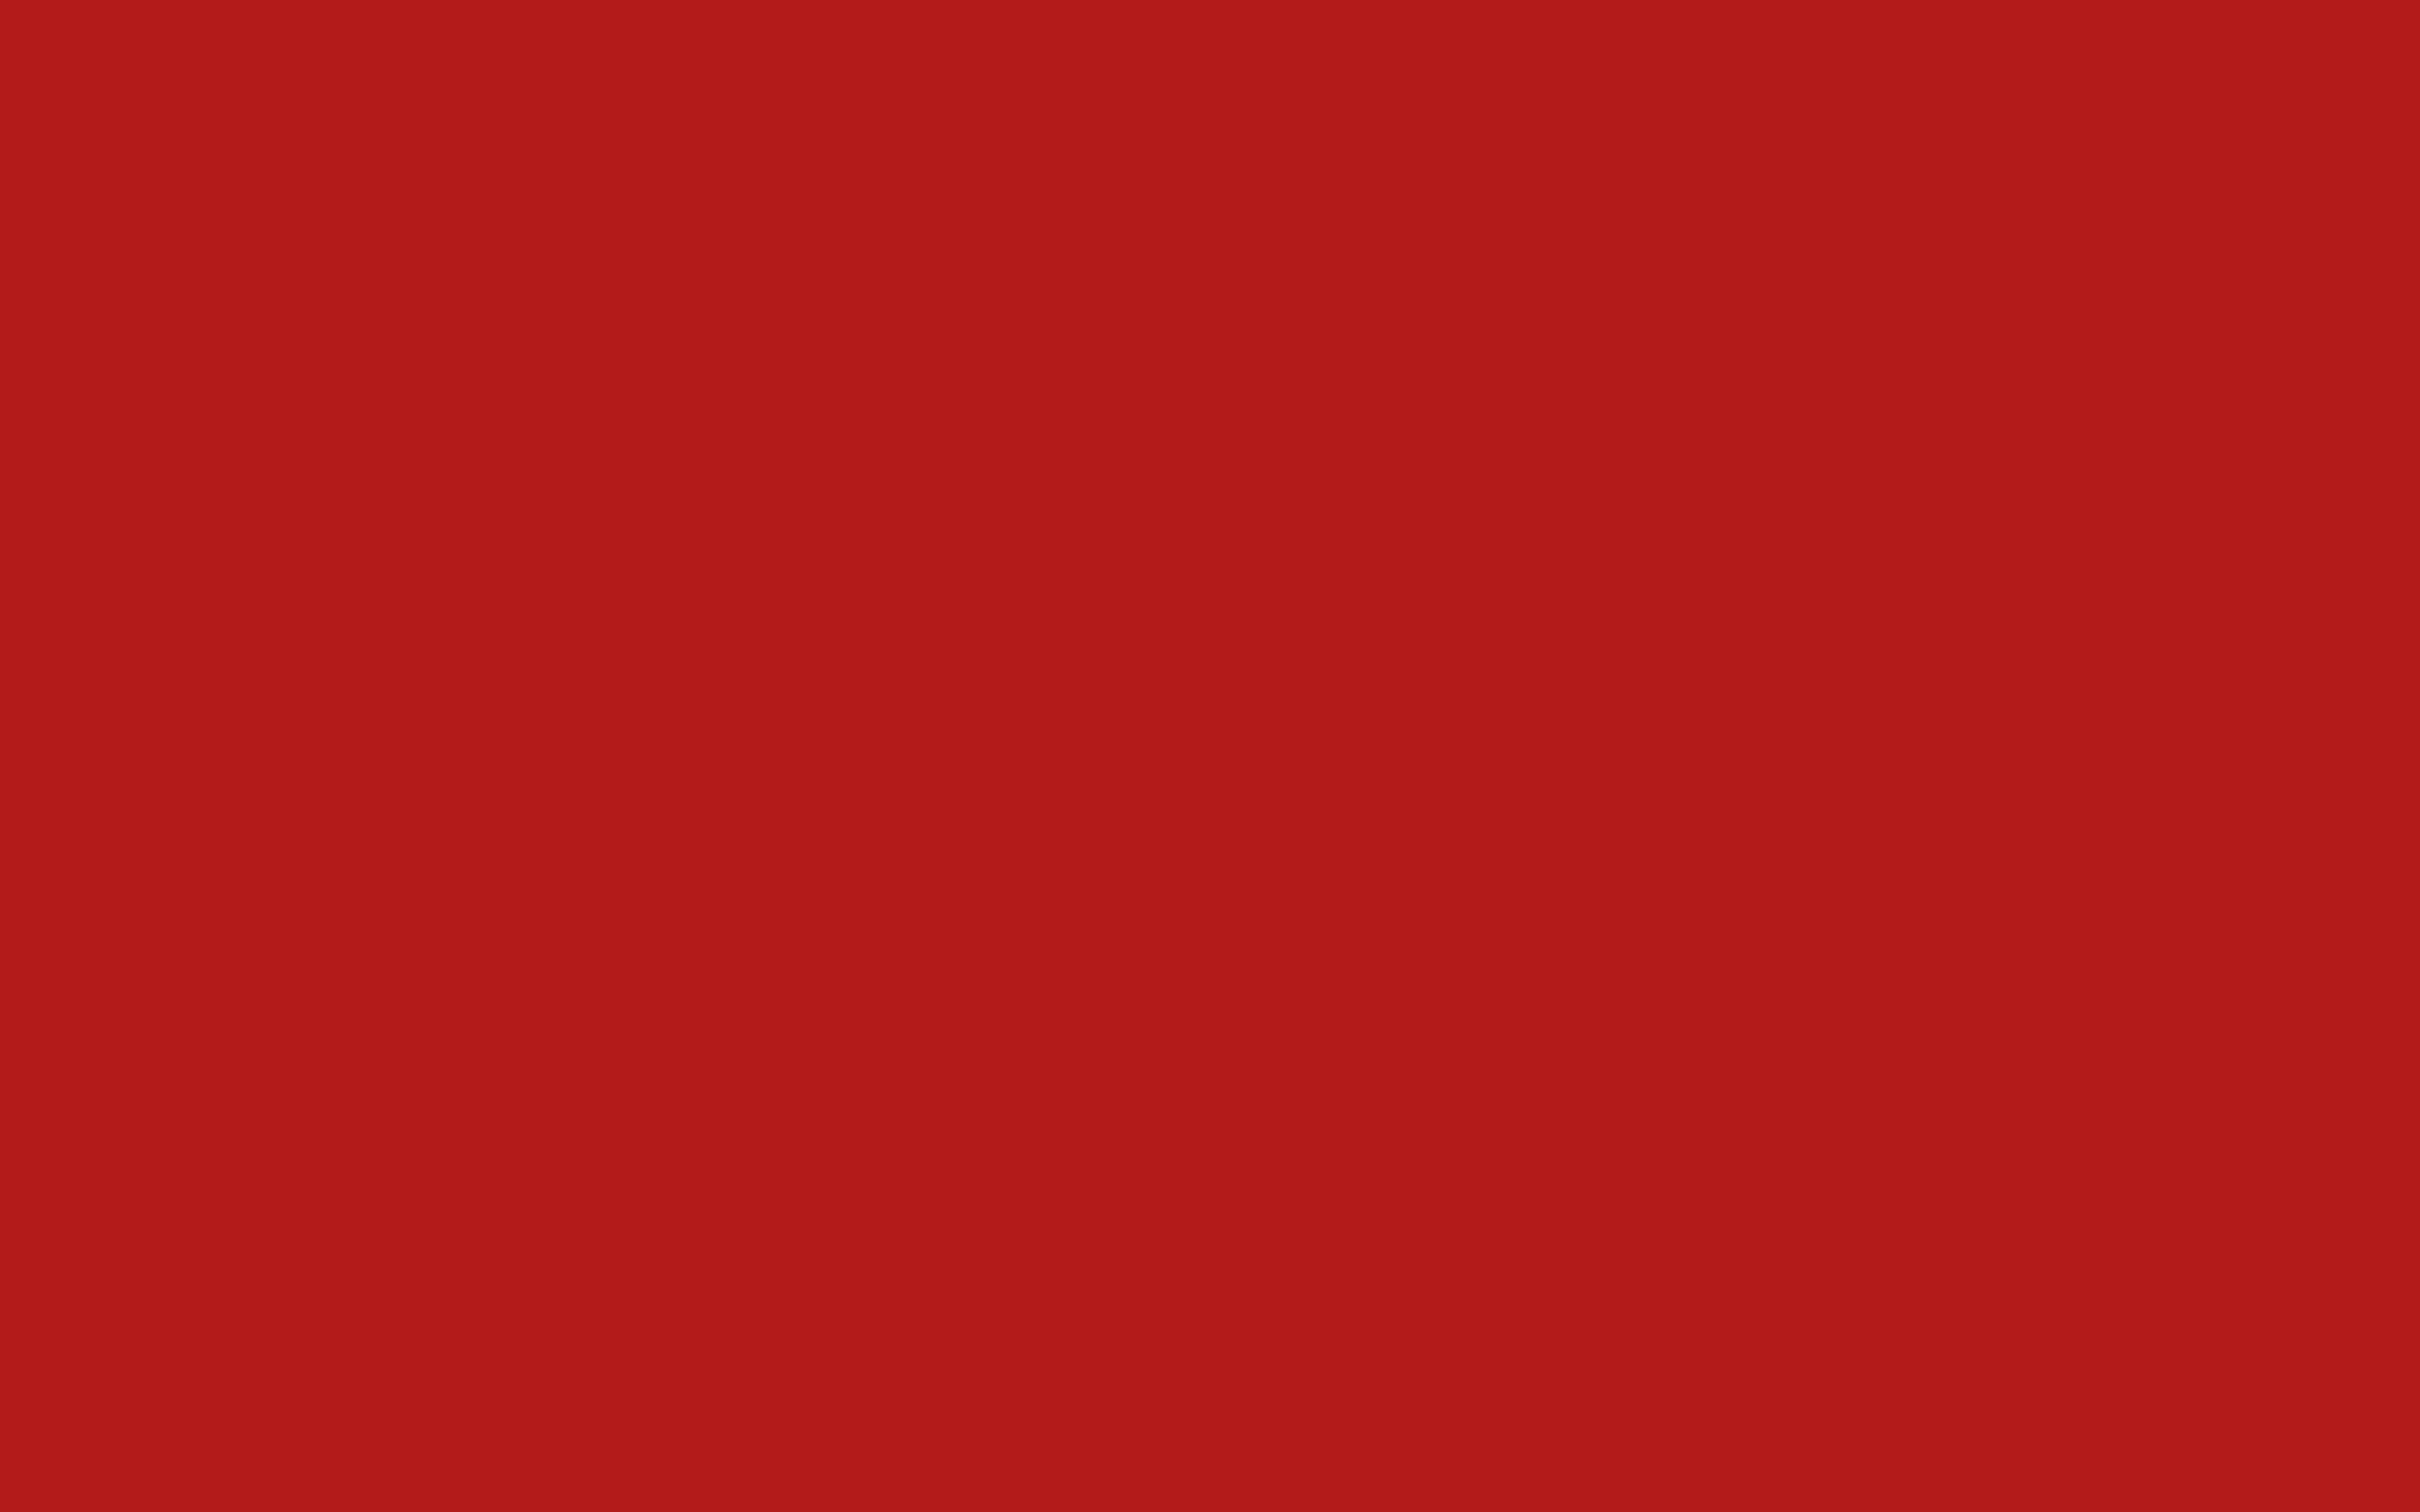 background color solid red cornell images 2560x1600